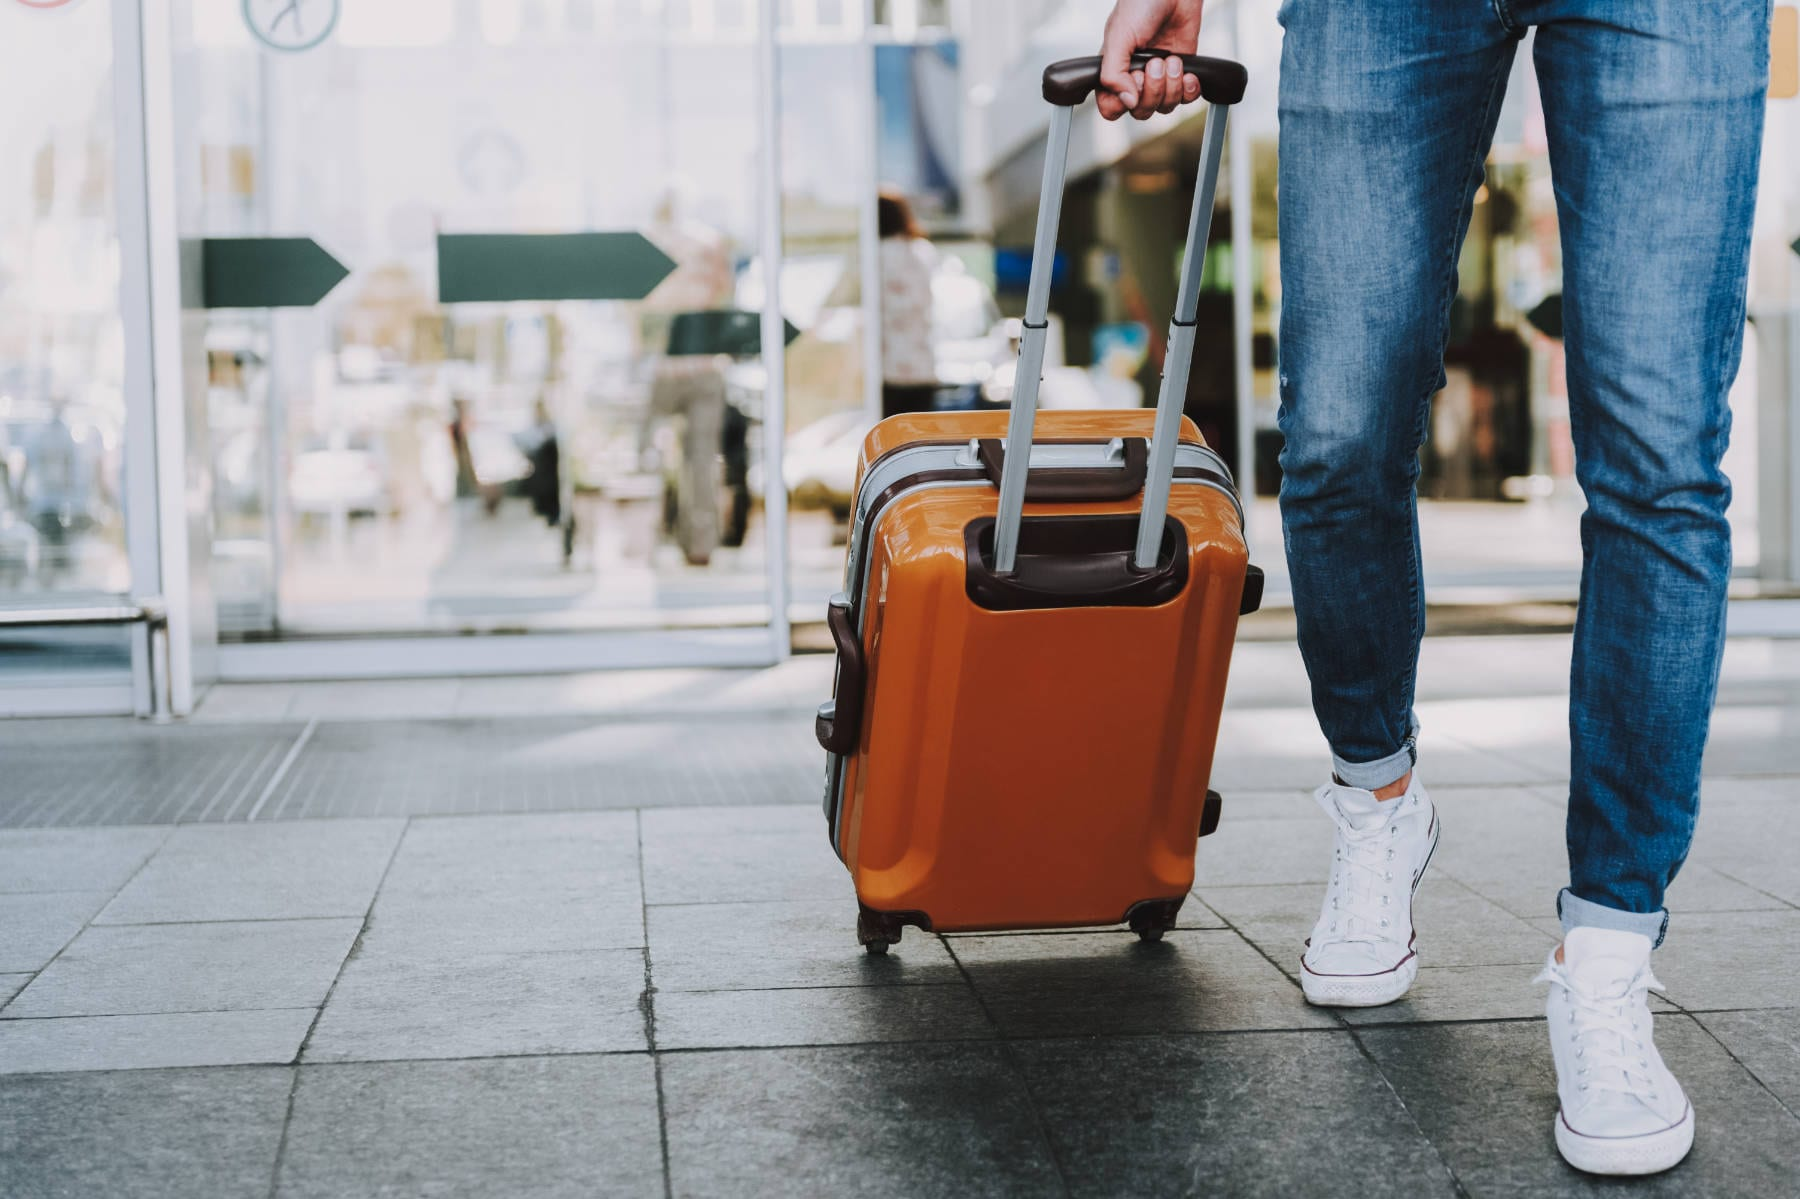 Male is carrying luggage in hall before trip